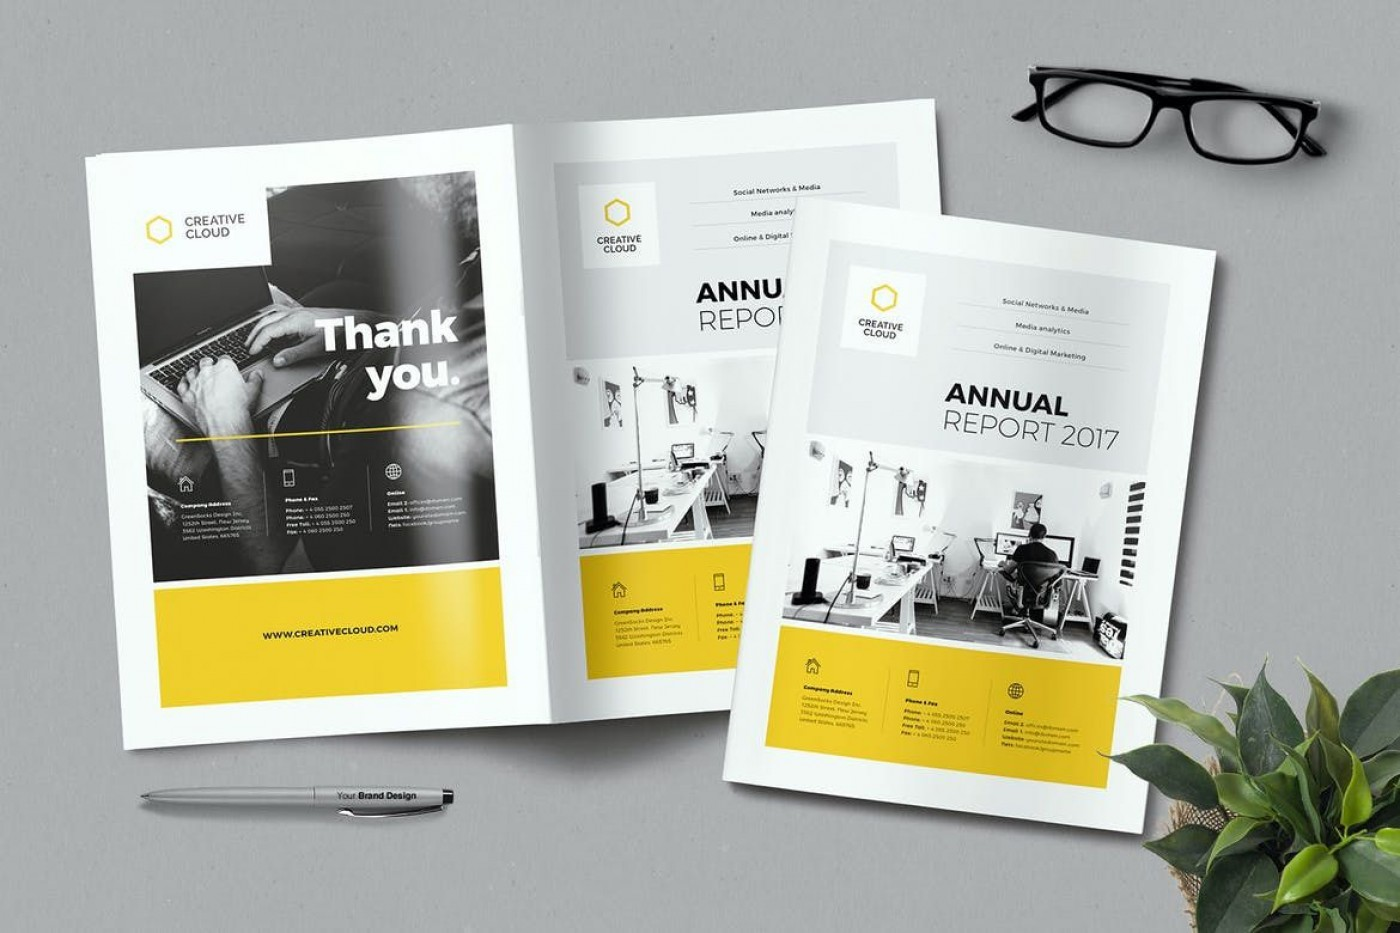 006 Remarkable Annual Report Design Template Indesign High Def  Free Download1400